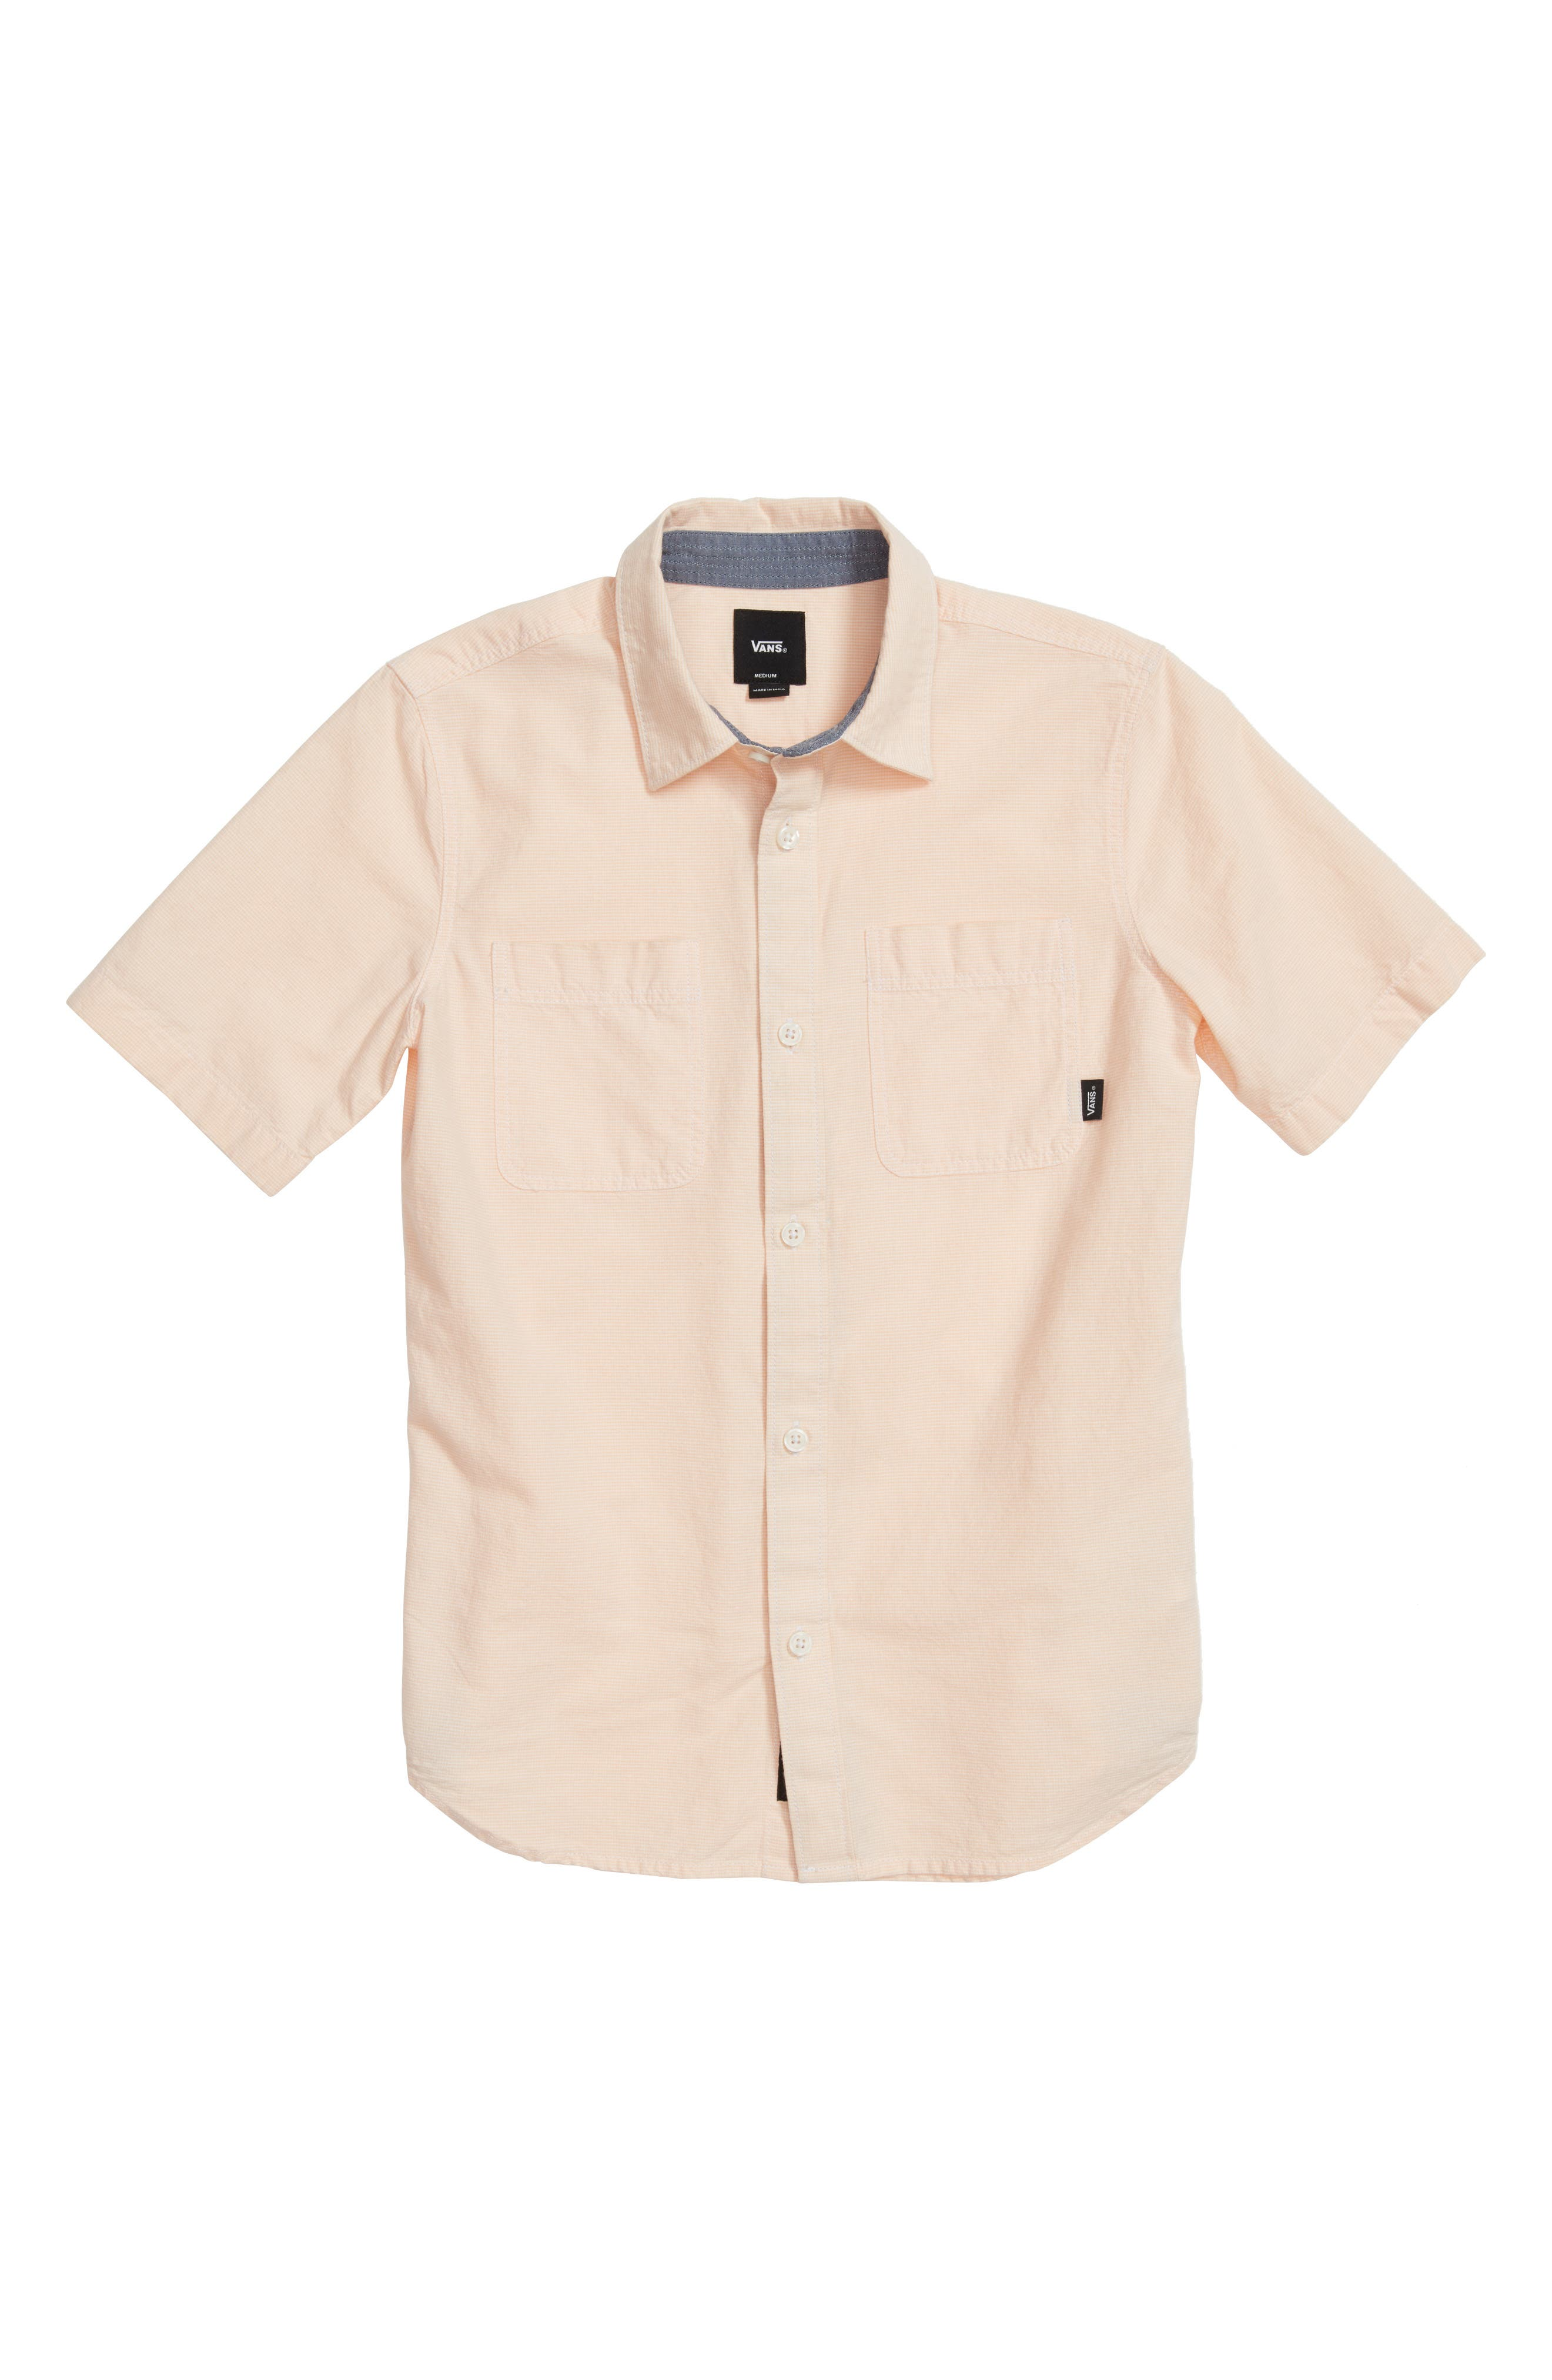 Alternate Image 1 Selected - Vans Wexford Woven Shirt (Big Boys)